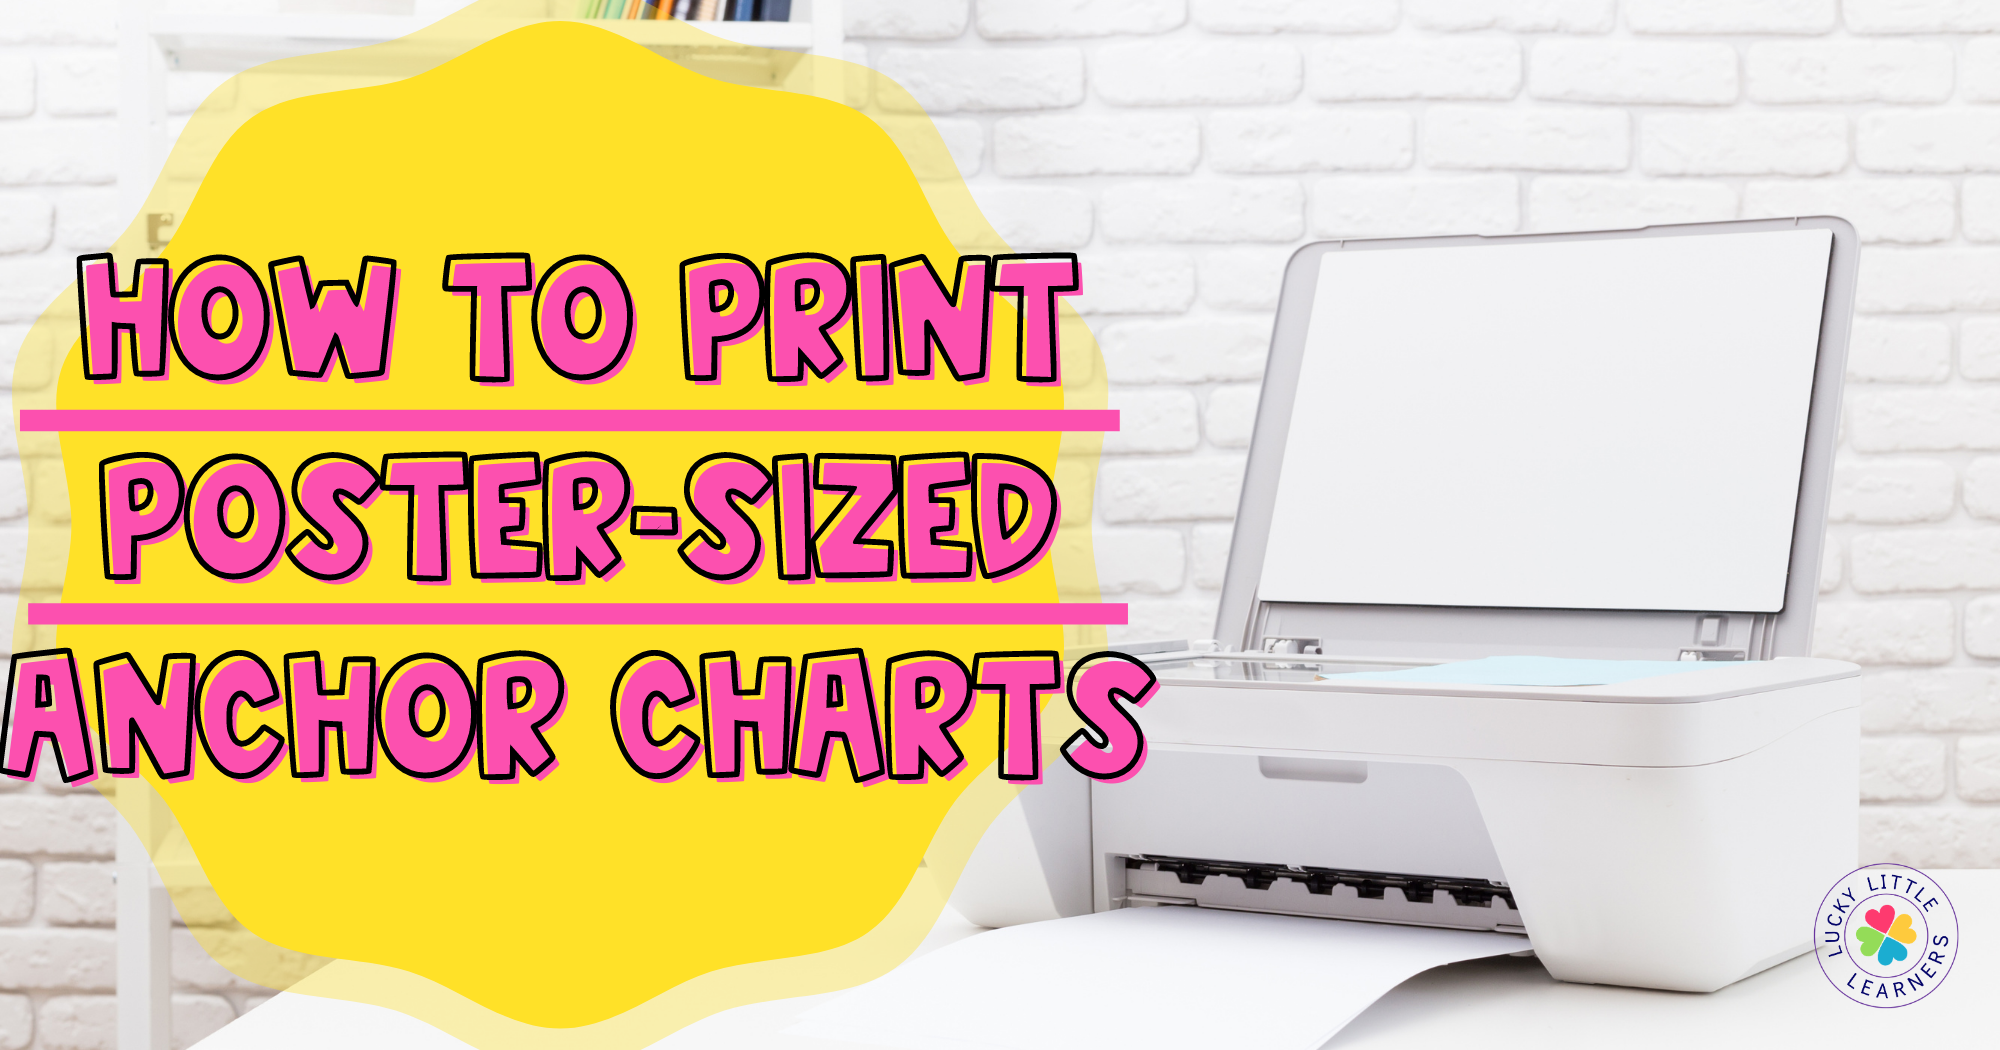 How to Print Poster-Sized Anchor Charts